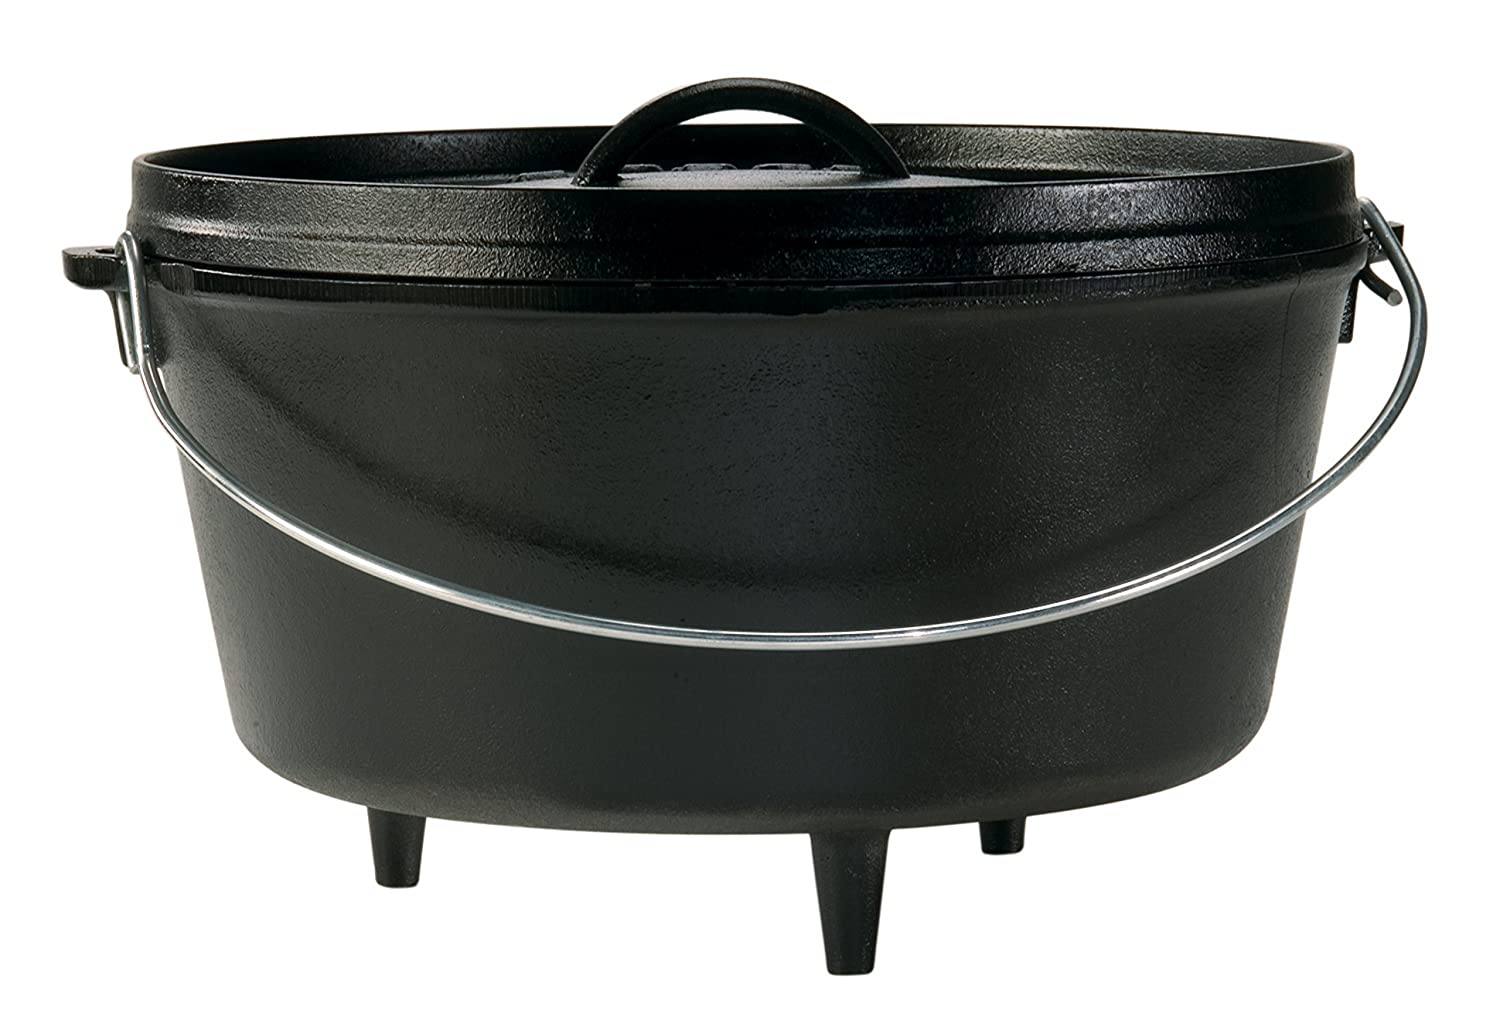 Top 10 Best Dutch Oven For Camping Reviews in 2021 5